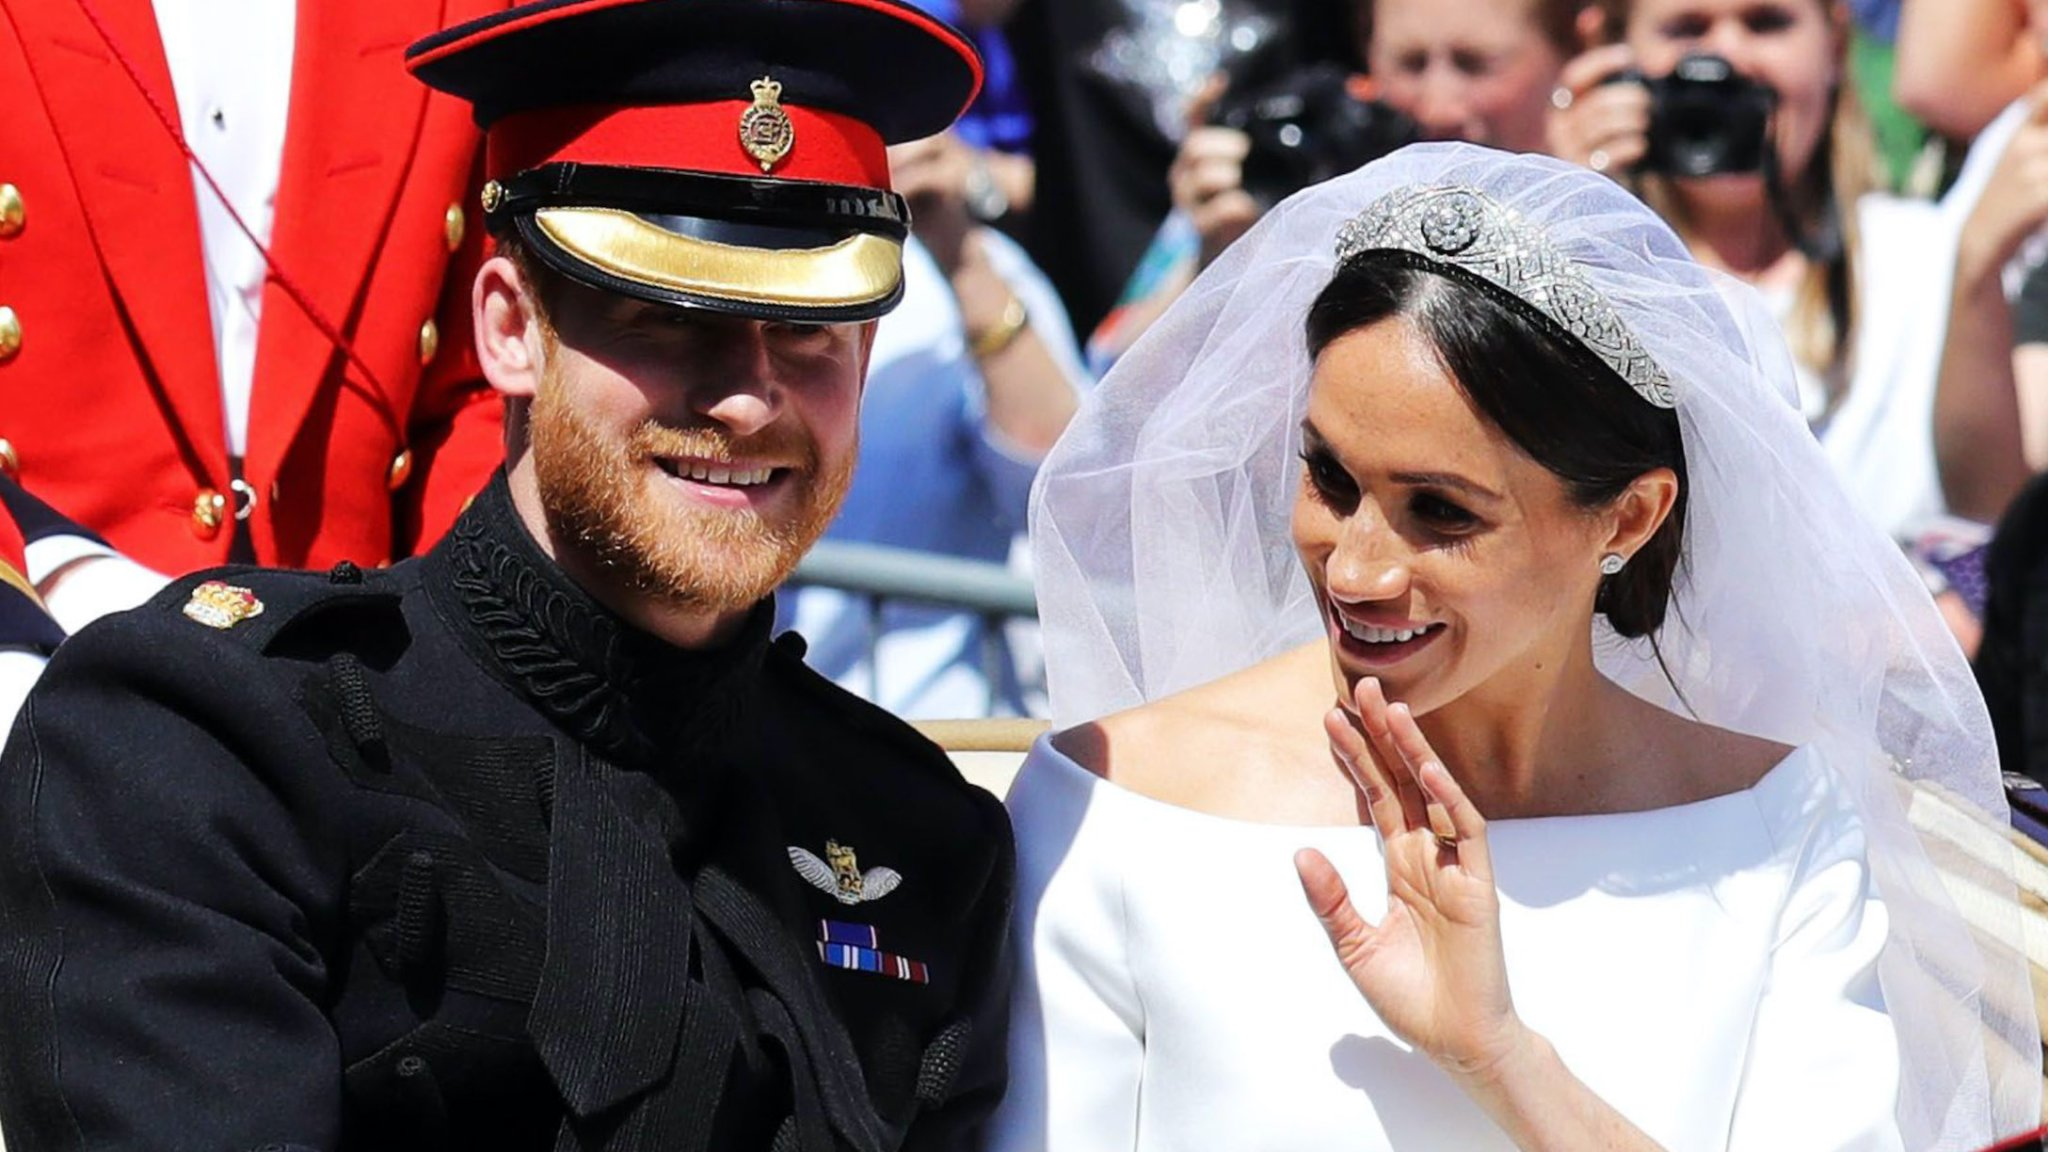 15 Nicknames the Royals Have for Each Other